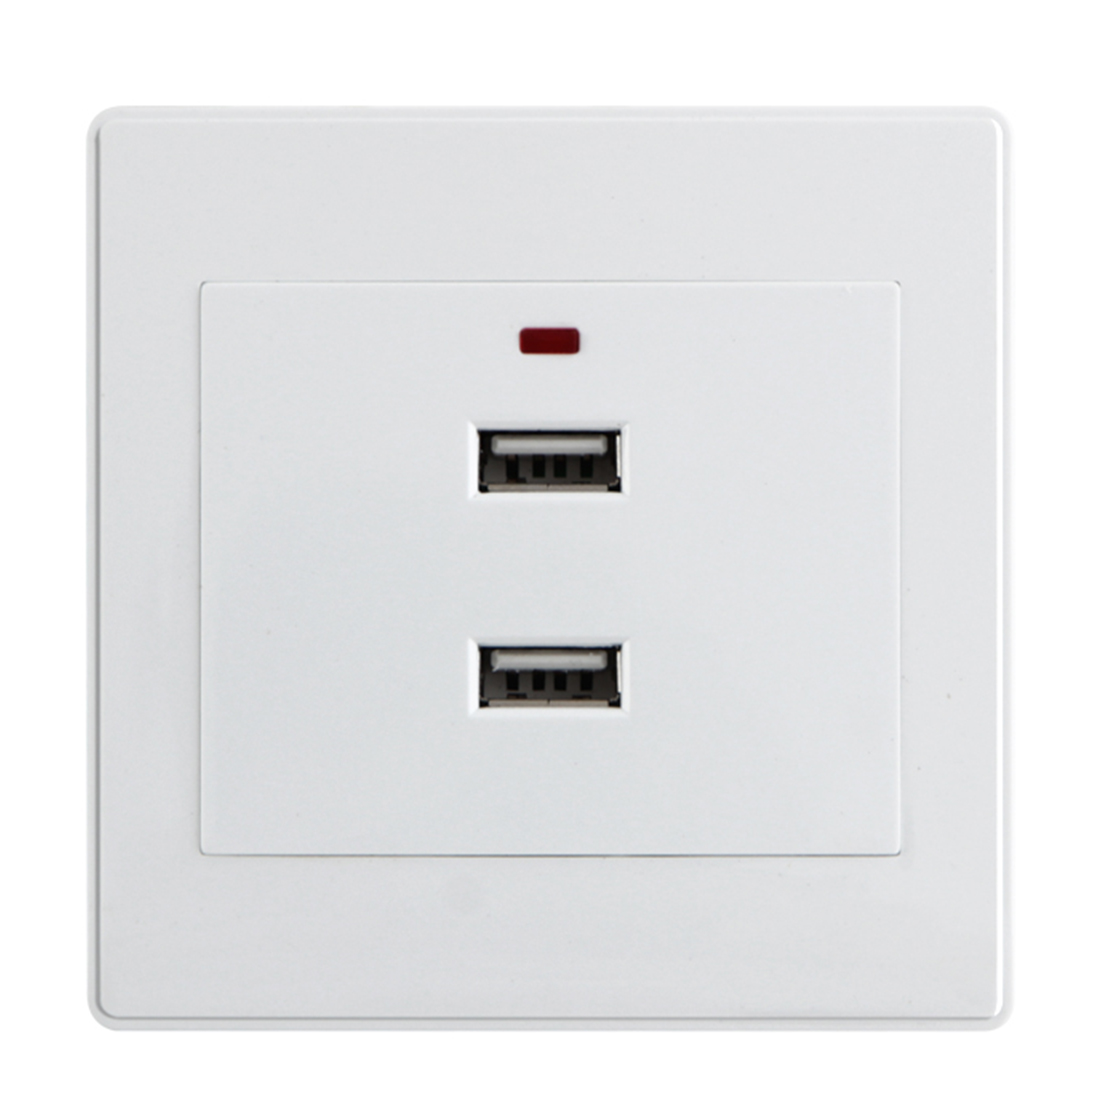 USB 2.0 Ports Charger Adapter Wall Power Outlet Socket Plug For Wall Face Plate